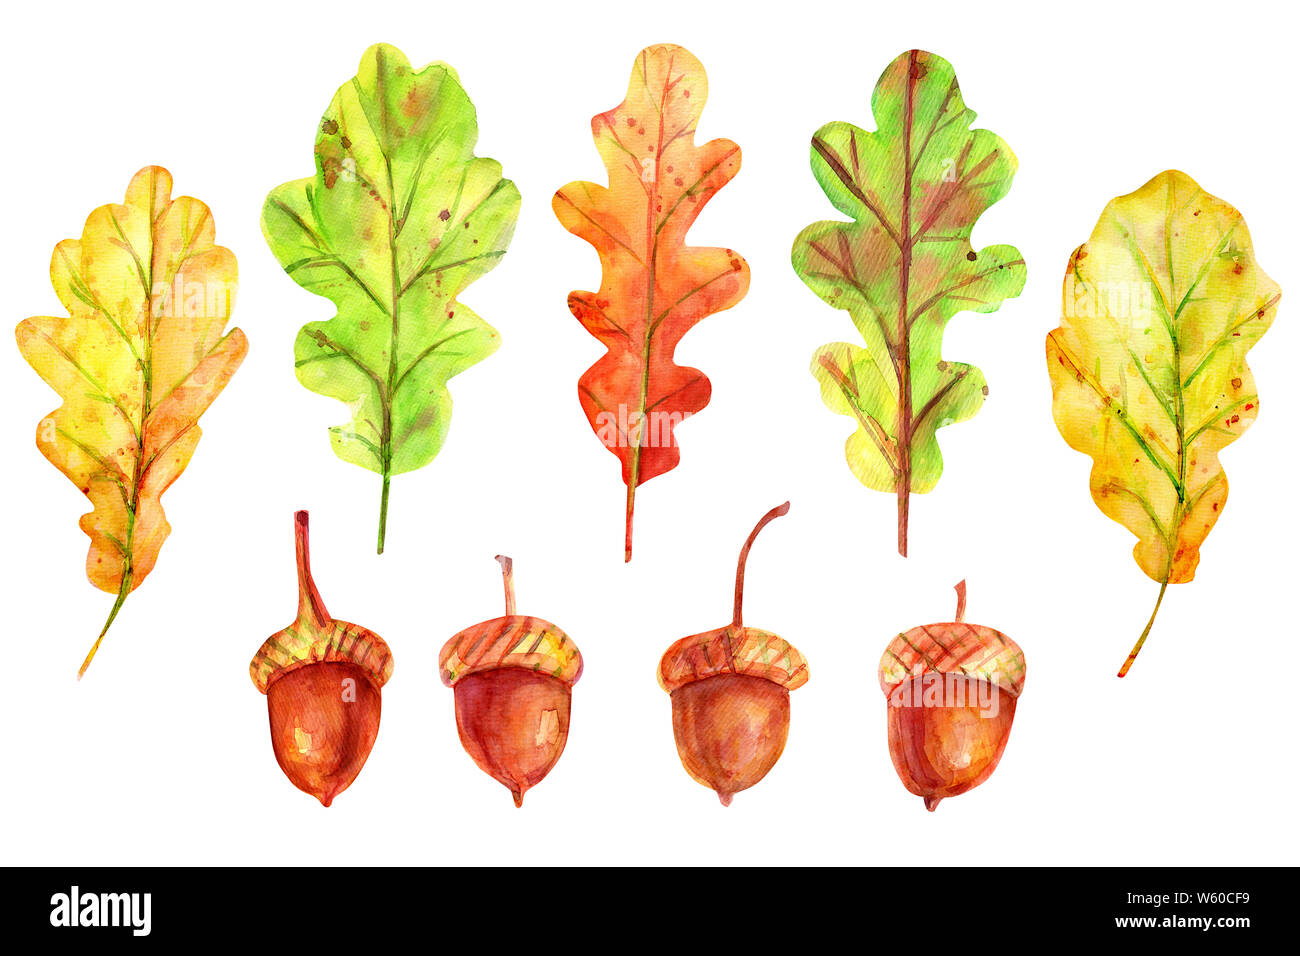 Watercolor autumn set with leaves and acorns. Four seeds of a tree of an oak red-brown color with a gold-ocher cup. 5 fallen leaves of yellow, green a Stock Photo